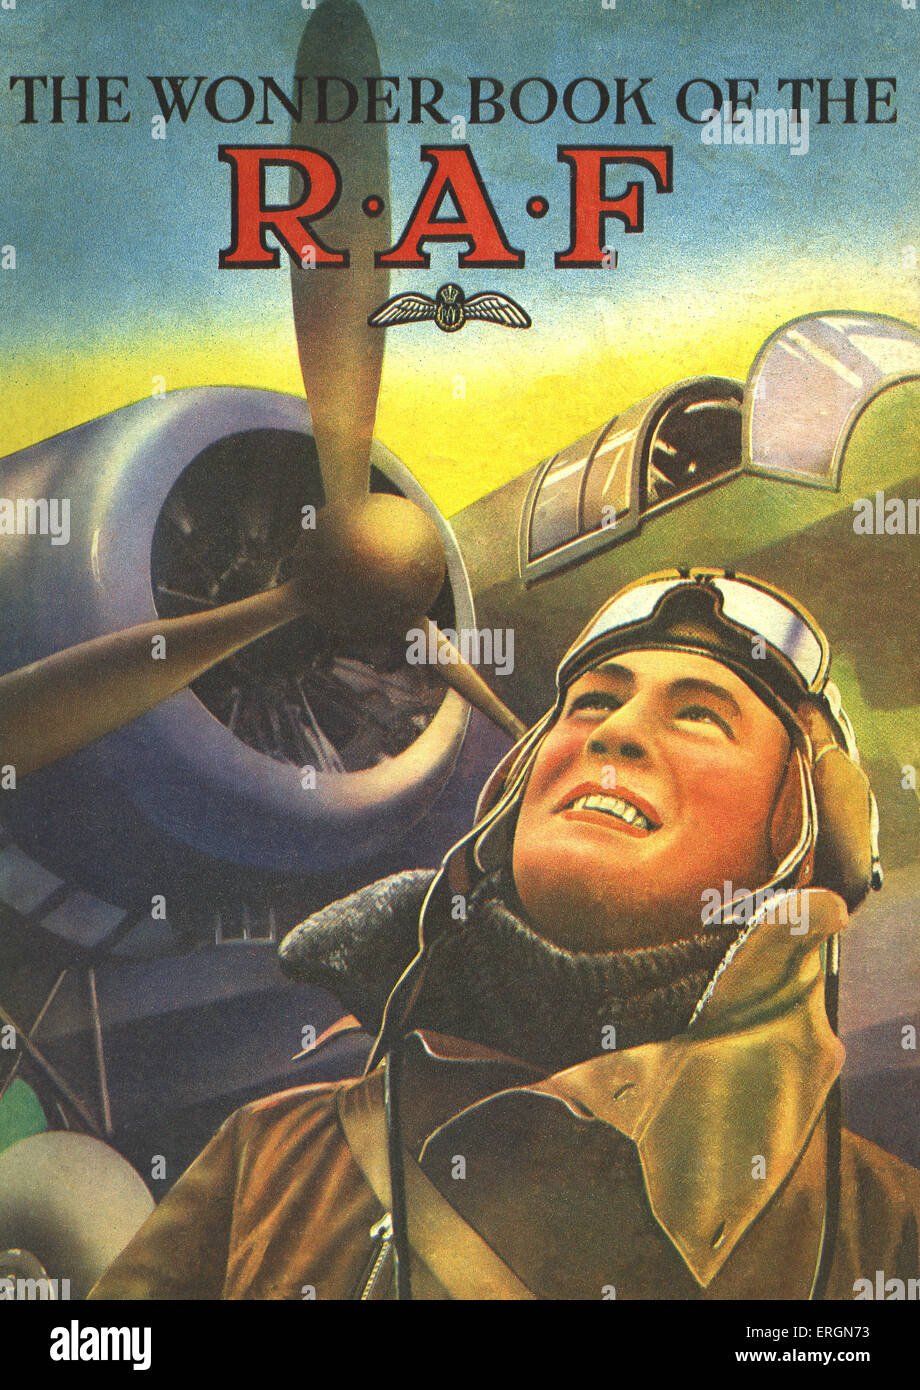 WW2 - The Wonder Book of the R.A.F, front cover illustration. Caption reads: A Knight of the Air. - Stock Image